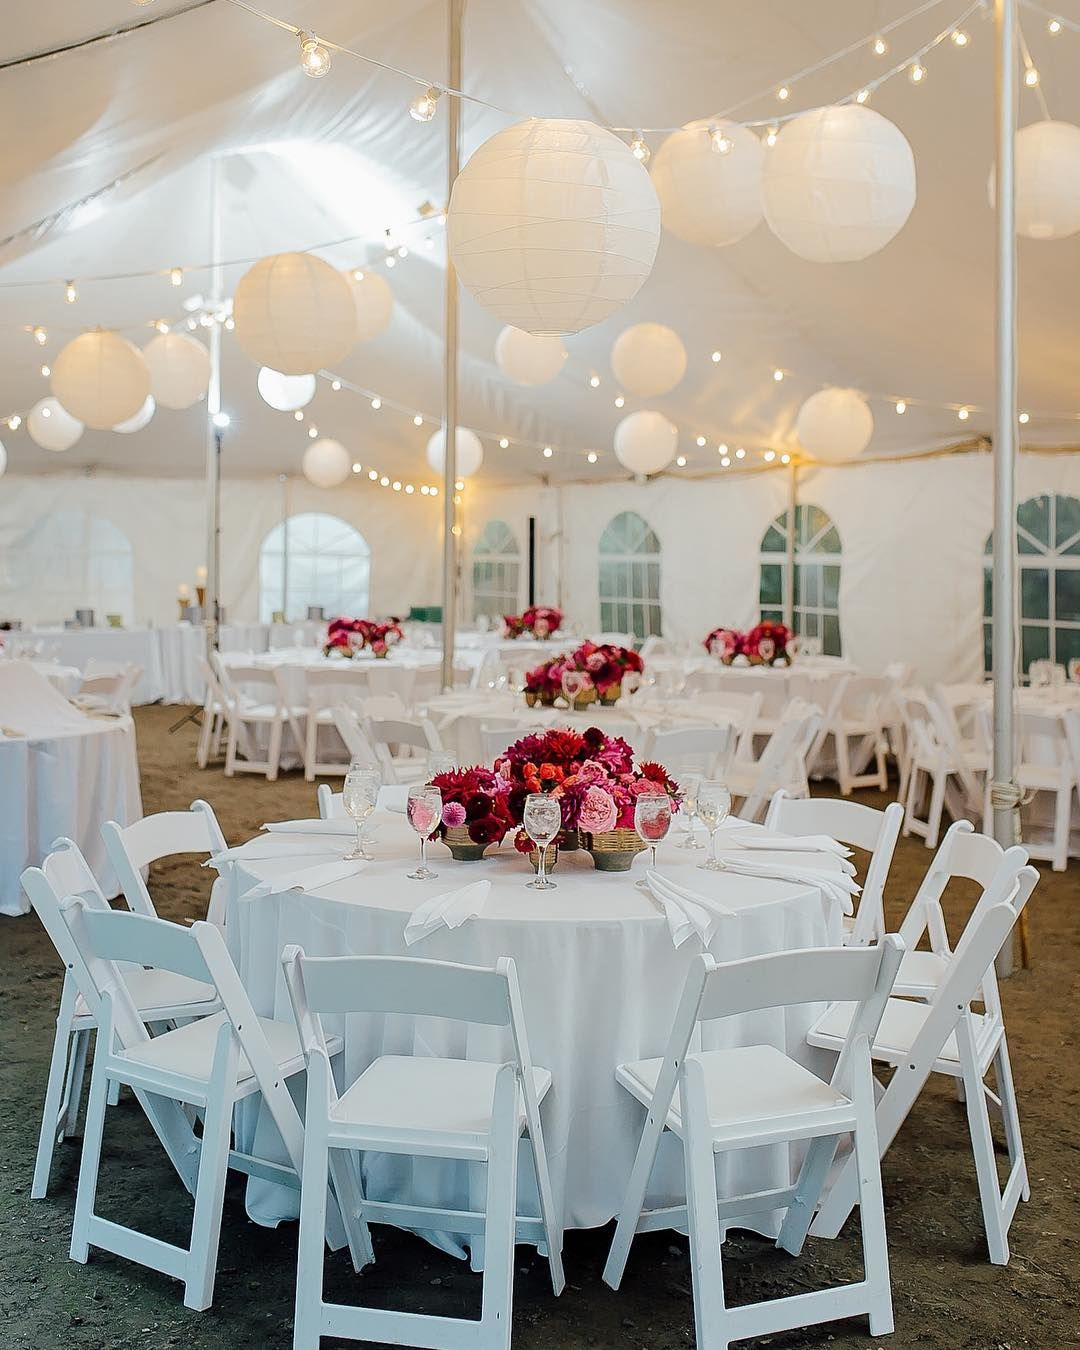 We love an all white tent with a pop of vibrant color.